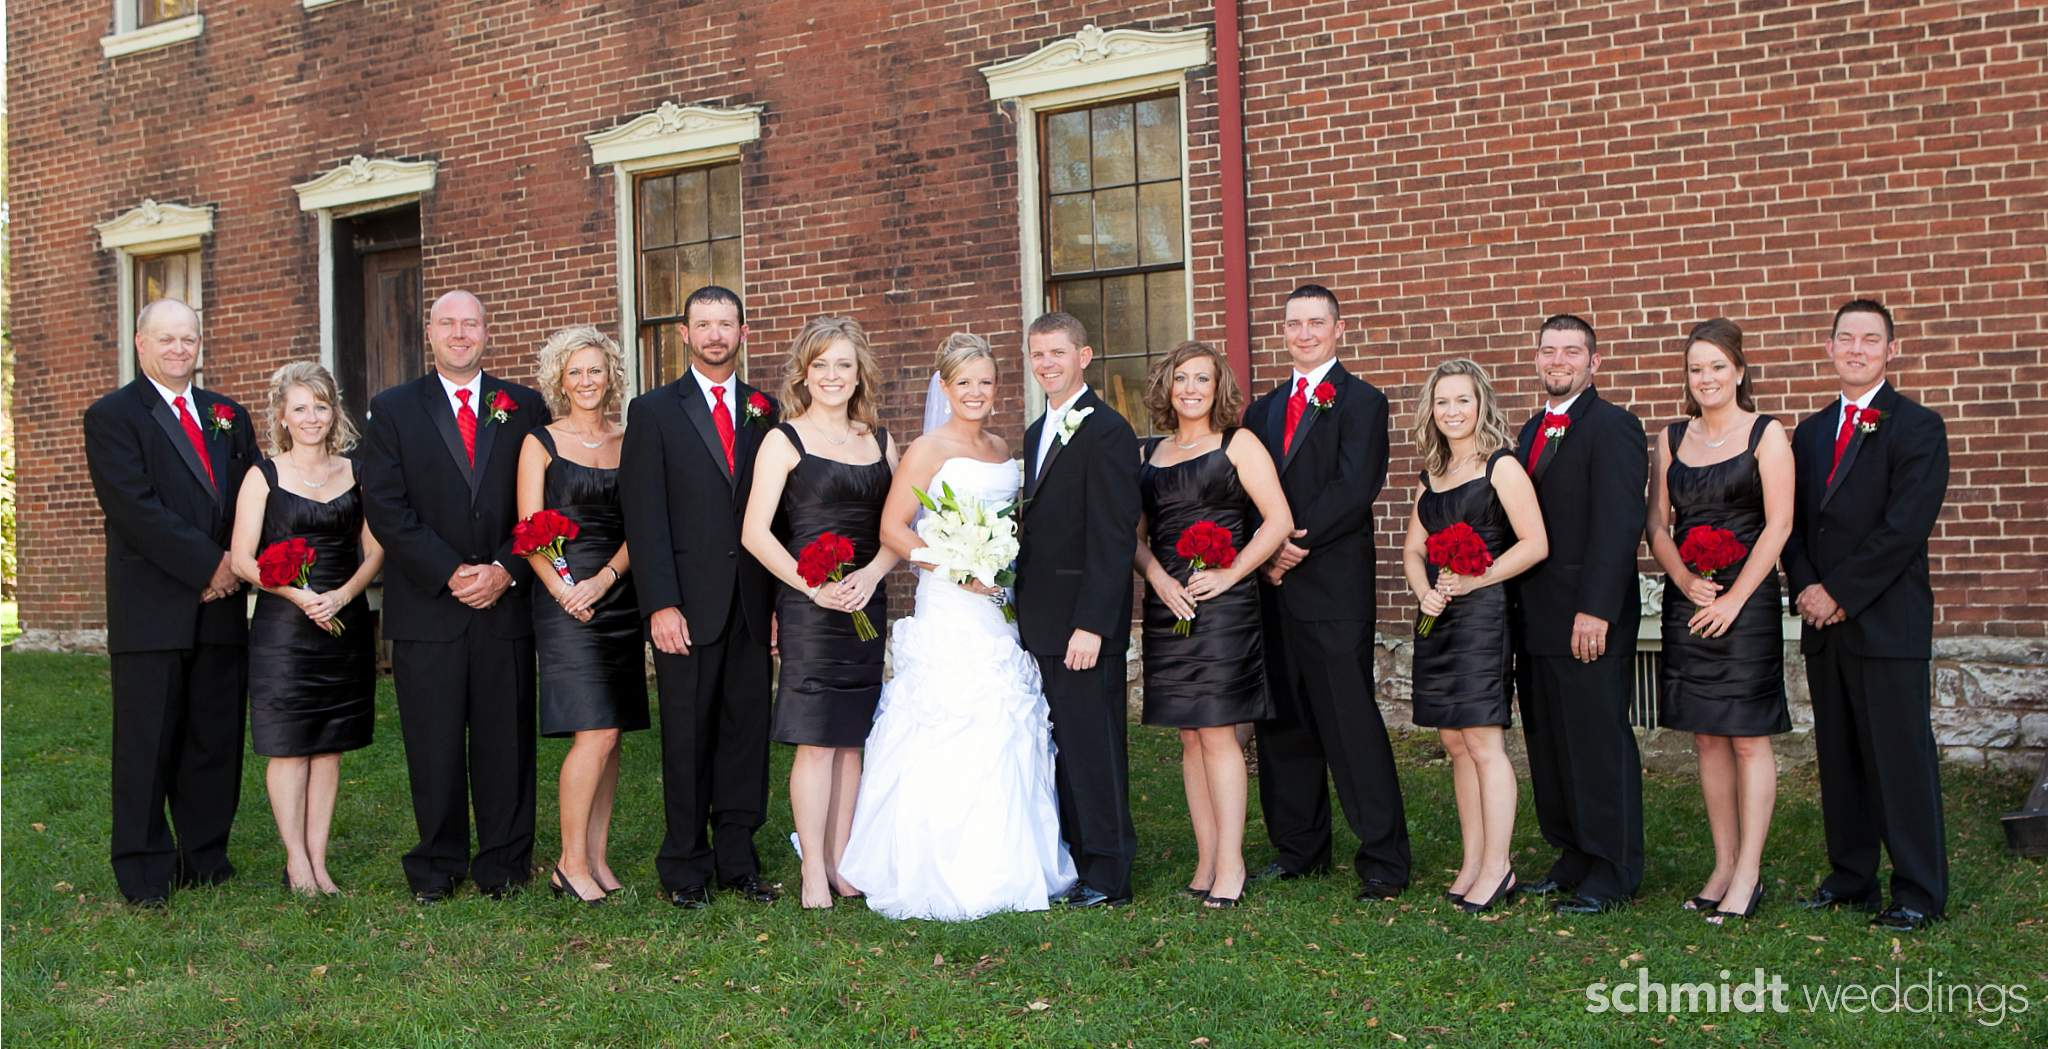 wedding bridal party photos outdoors schmidt weddings